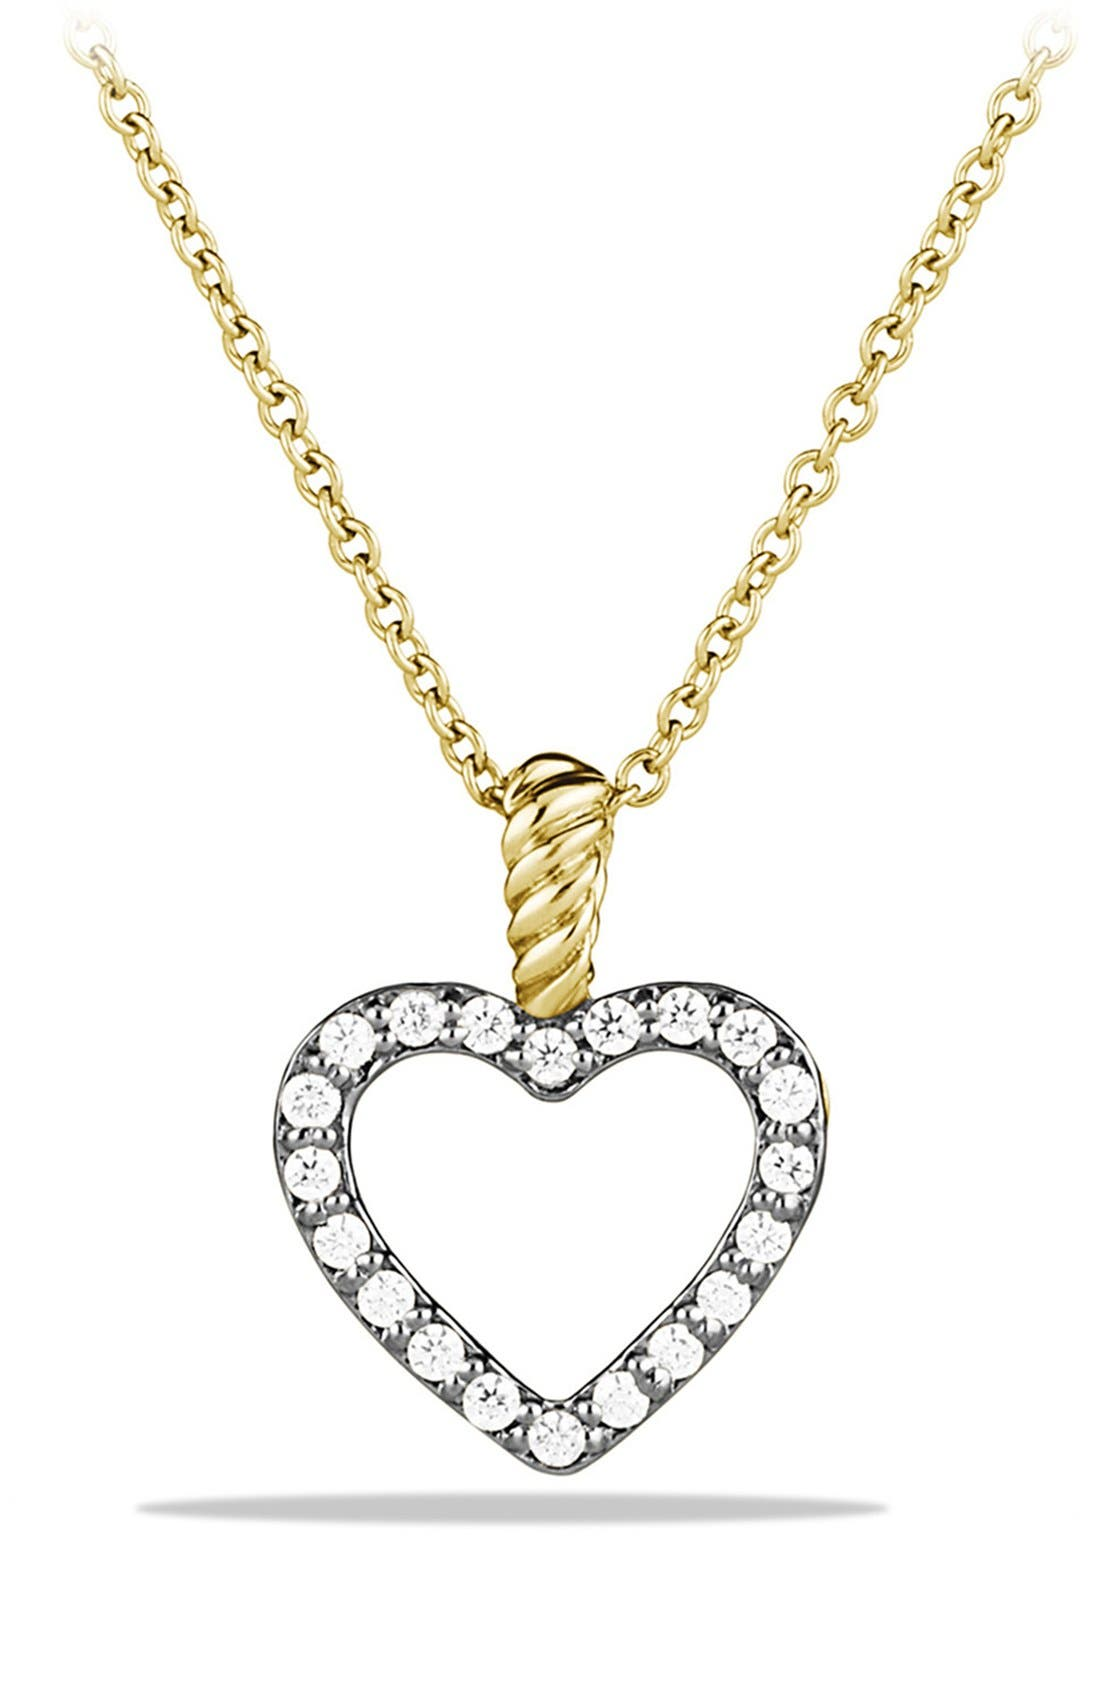 Alternate Image 1 Selected - David Yurman 'Cable Collectibles' Heart Pendant with Diamonds on Chain